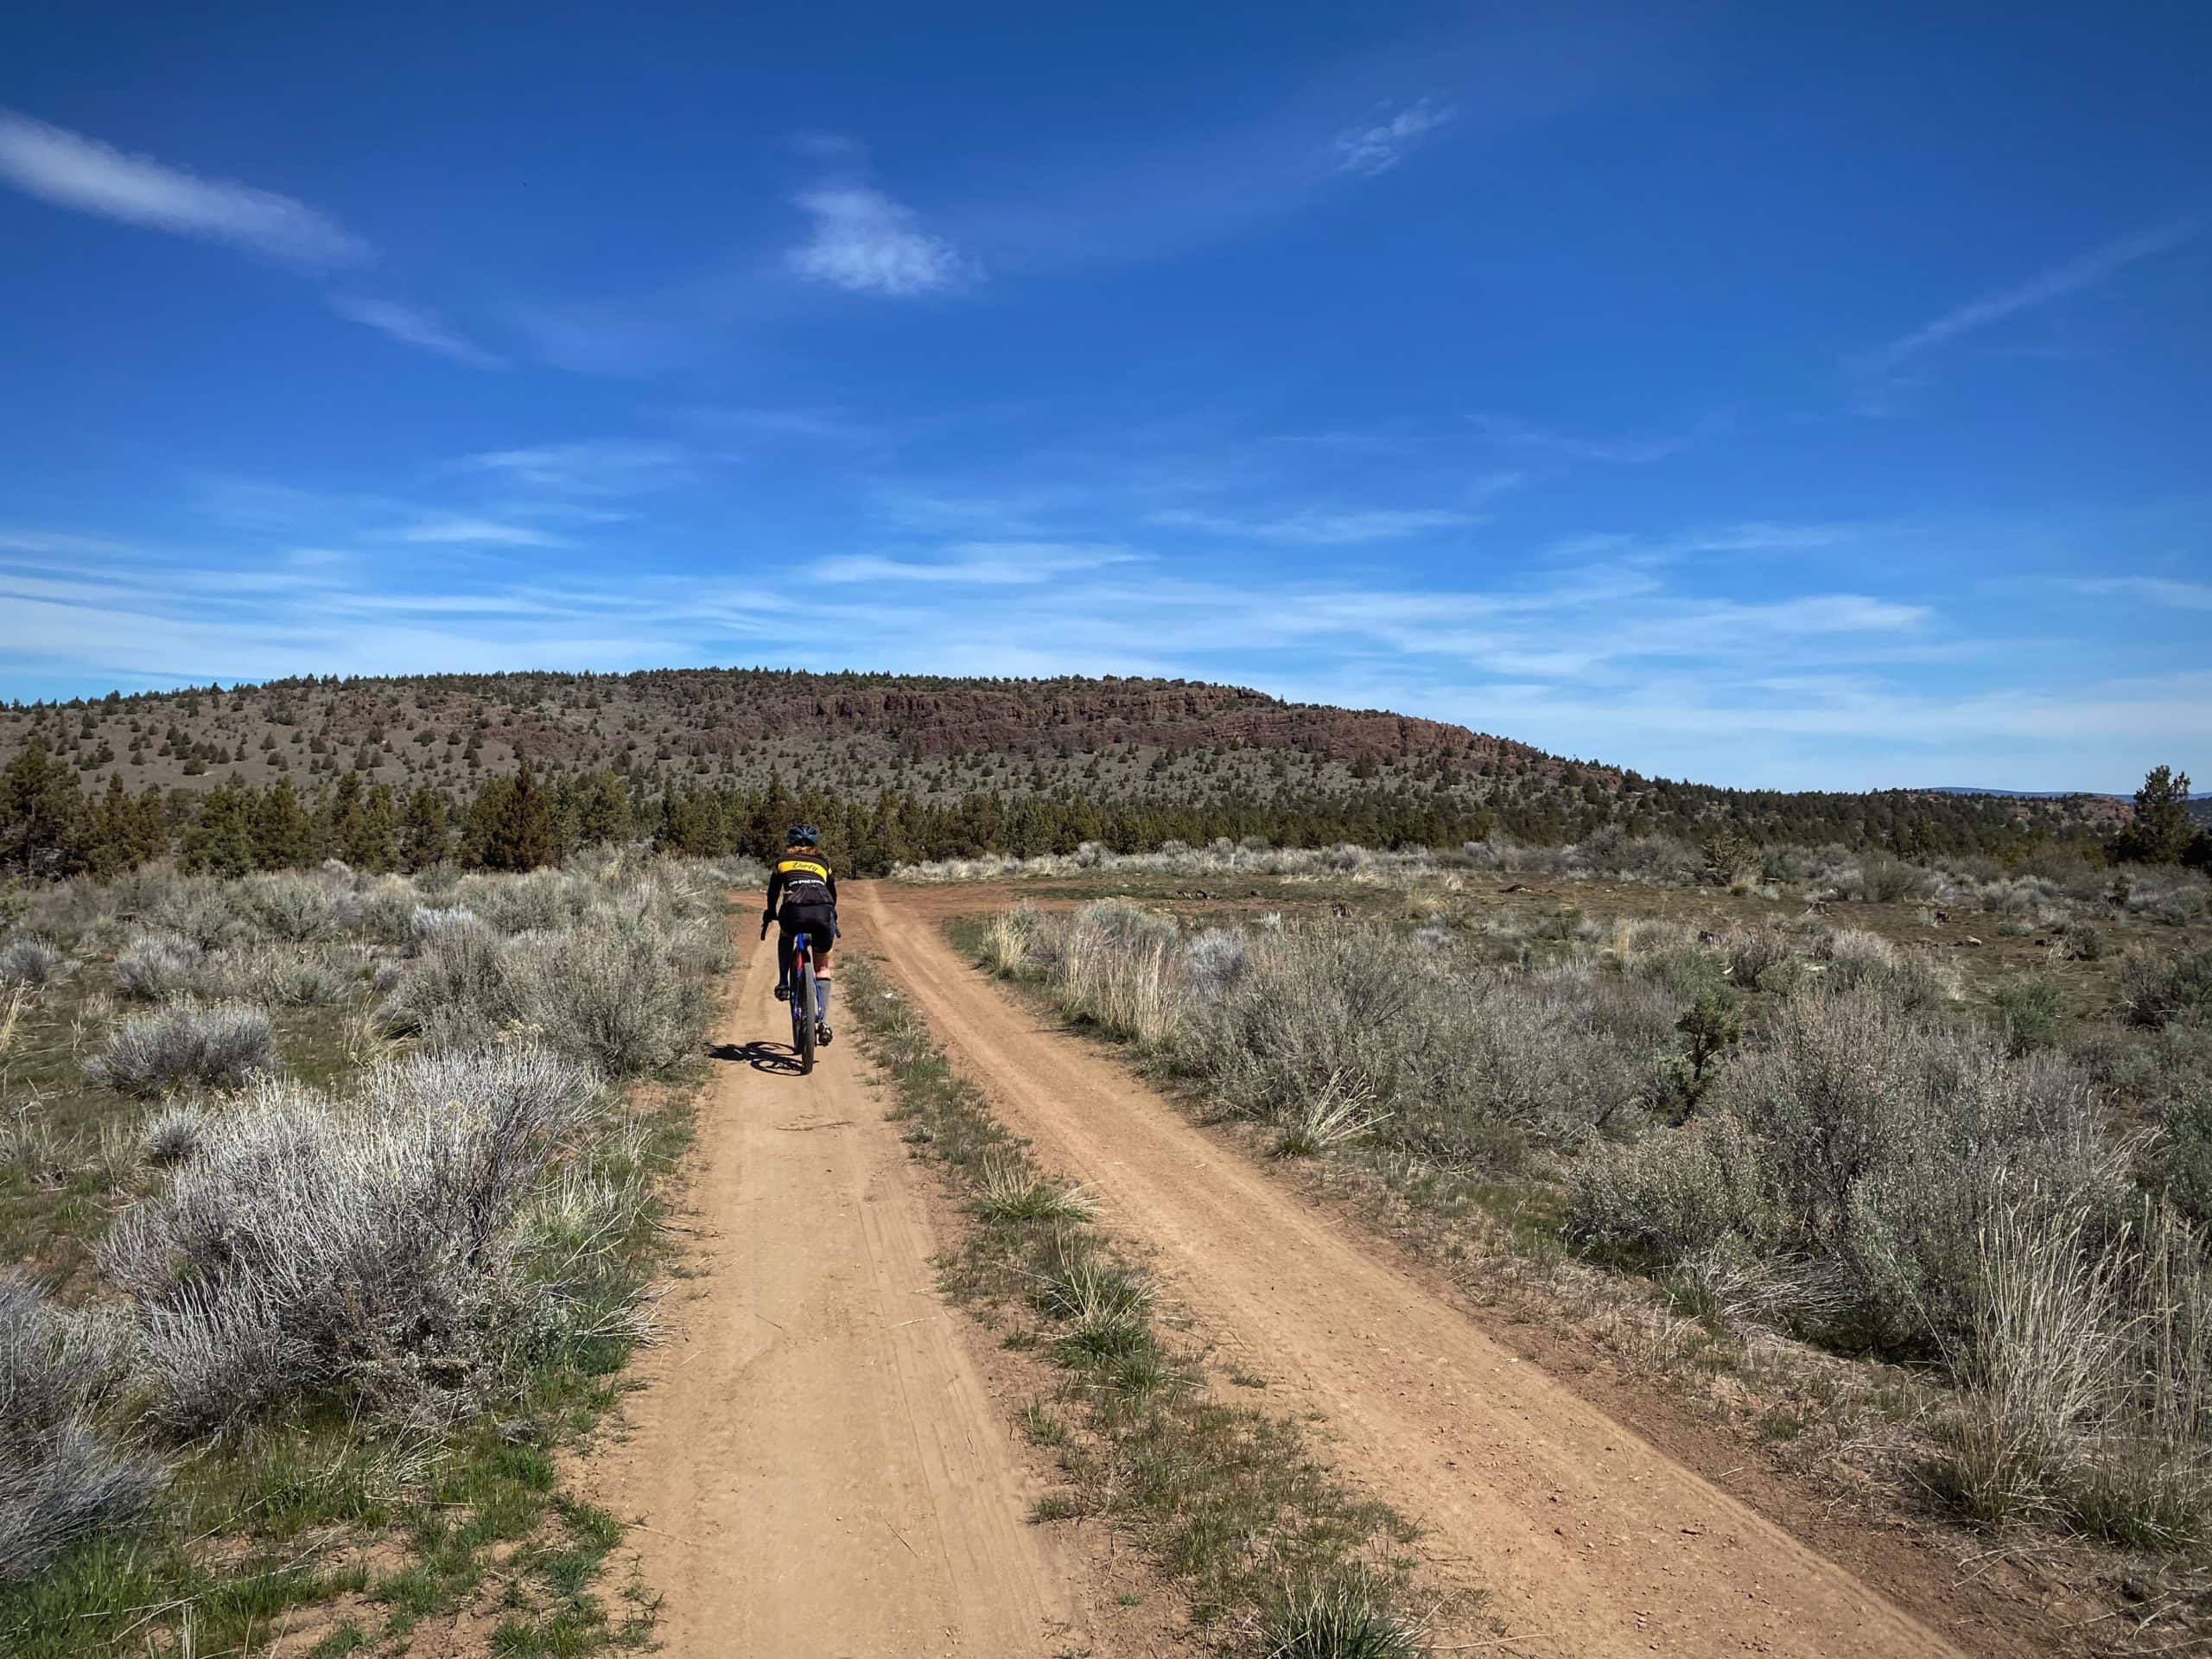 Cyclist on dirt road in Crooked River National Grassland.